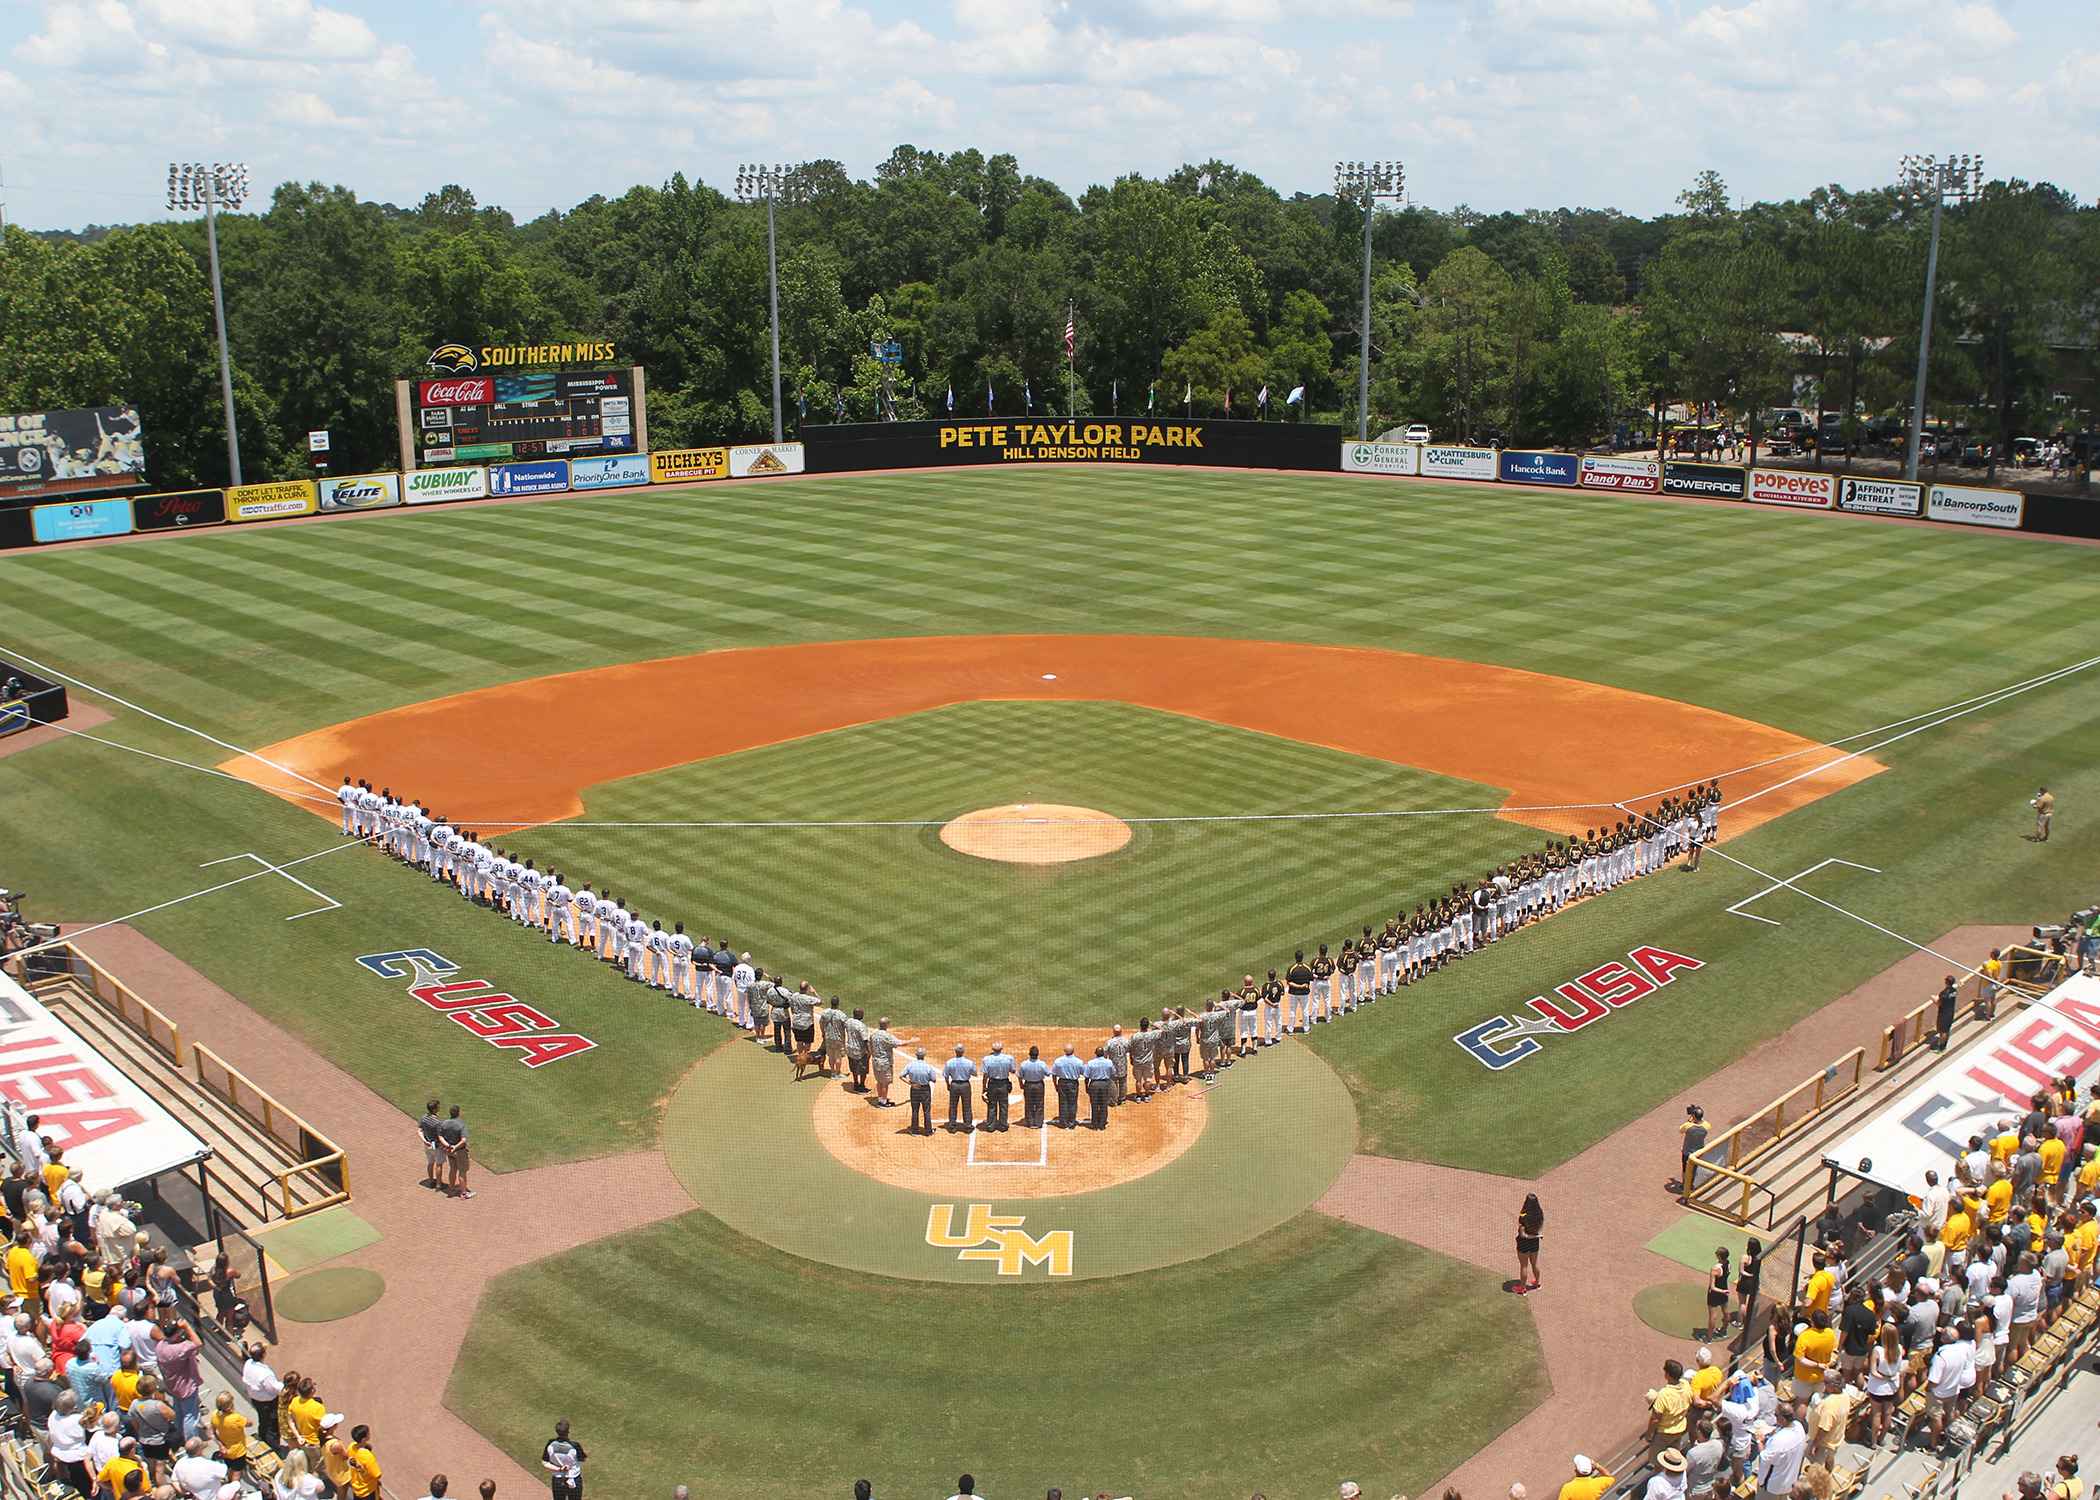 baseball announces homeandhome series with mississippi